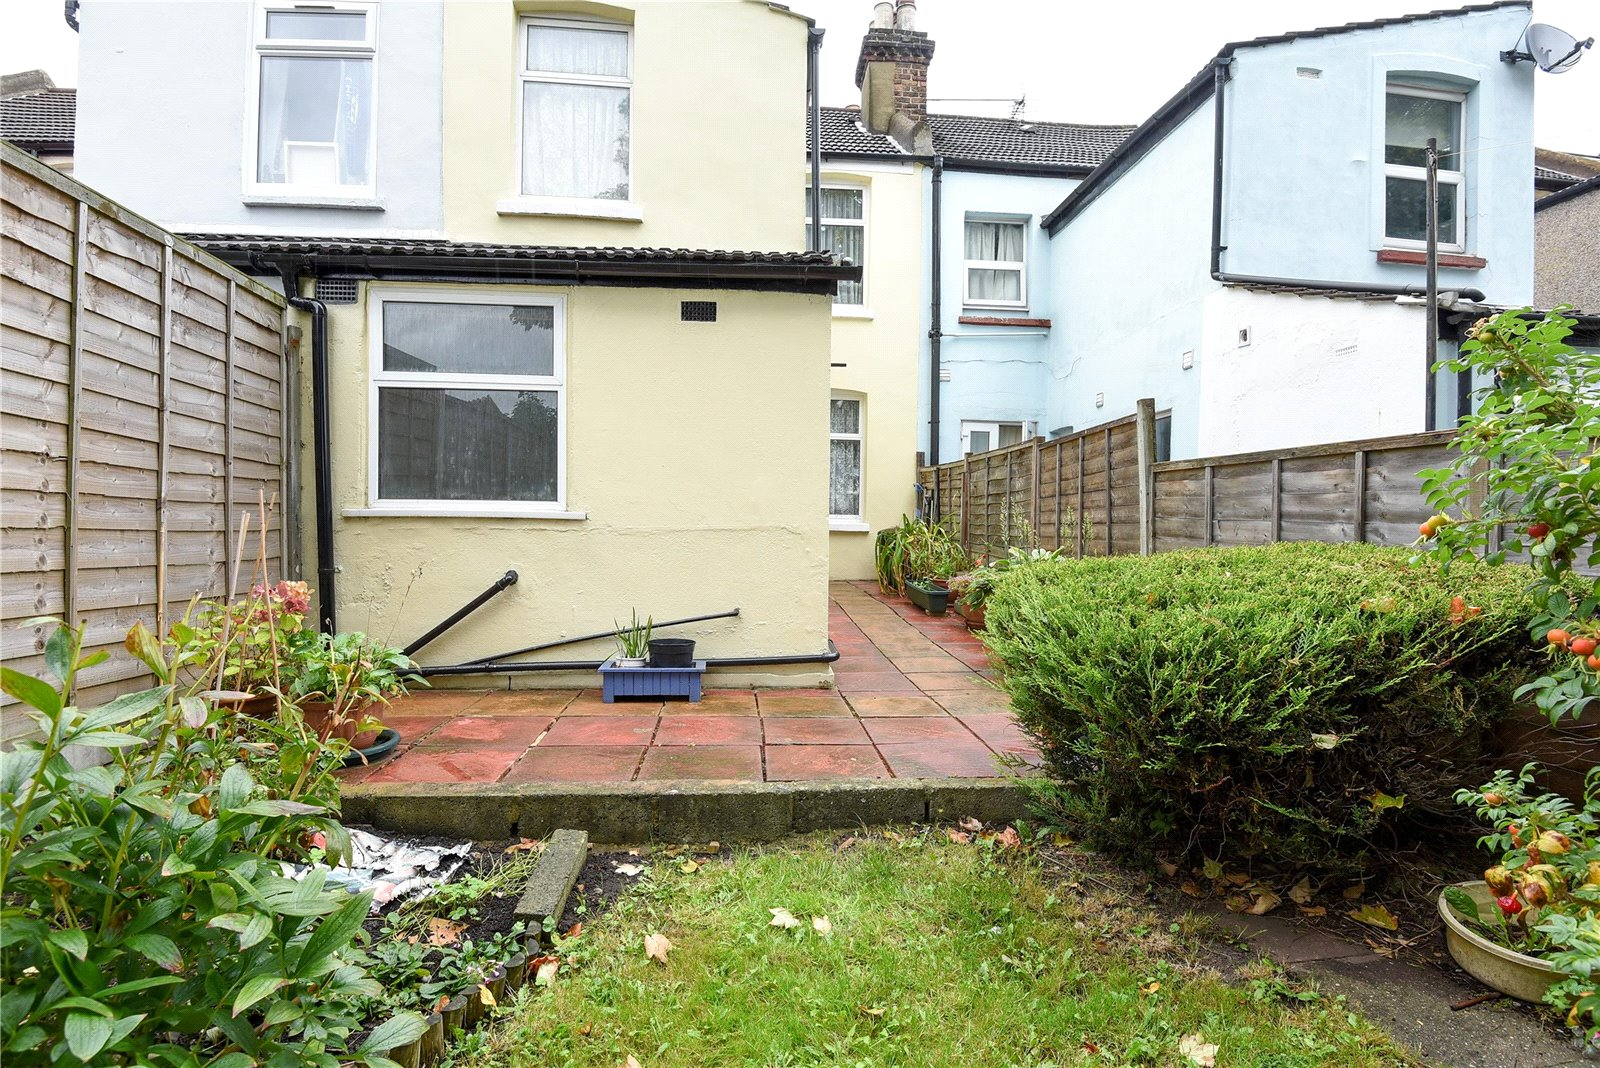 3 bed house for sale in Thornton Heath  - Property Image 3